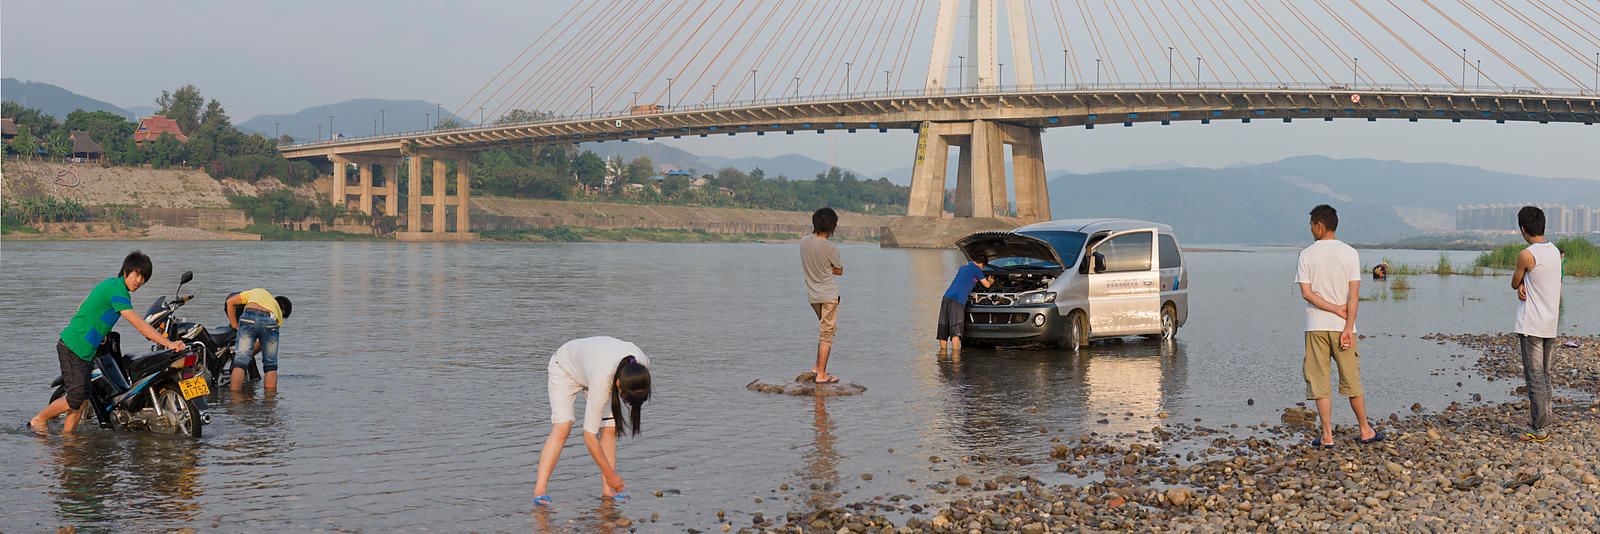 Washing cars in Mekong